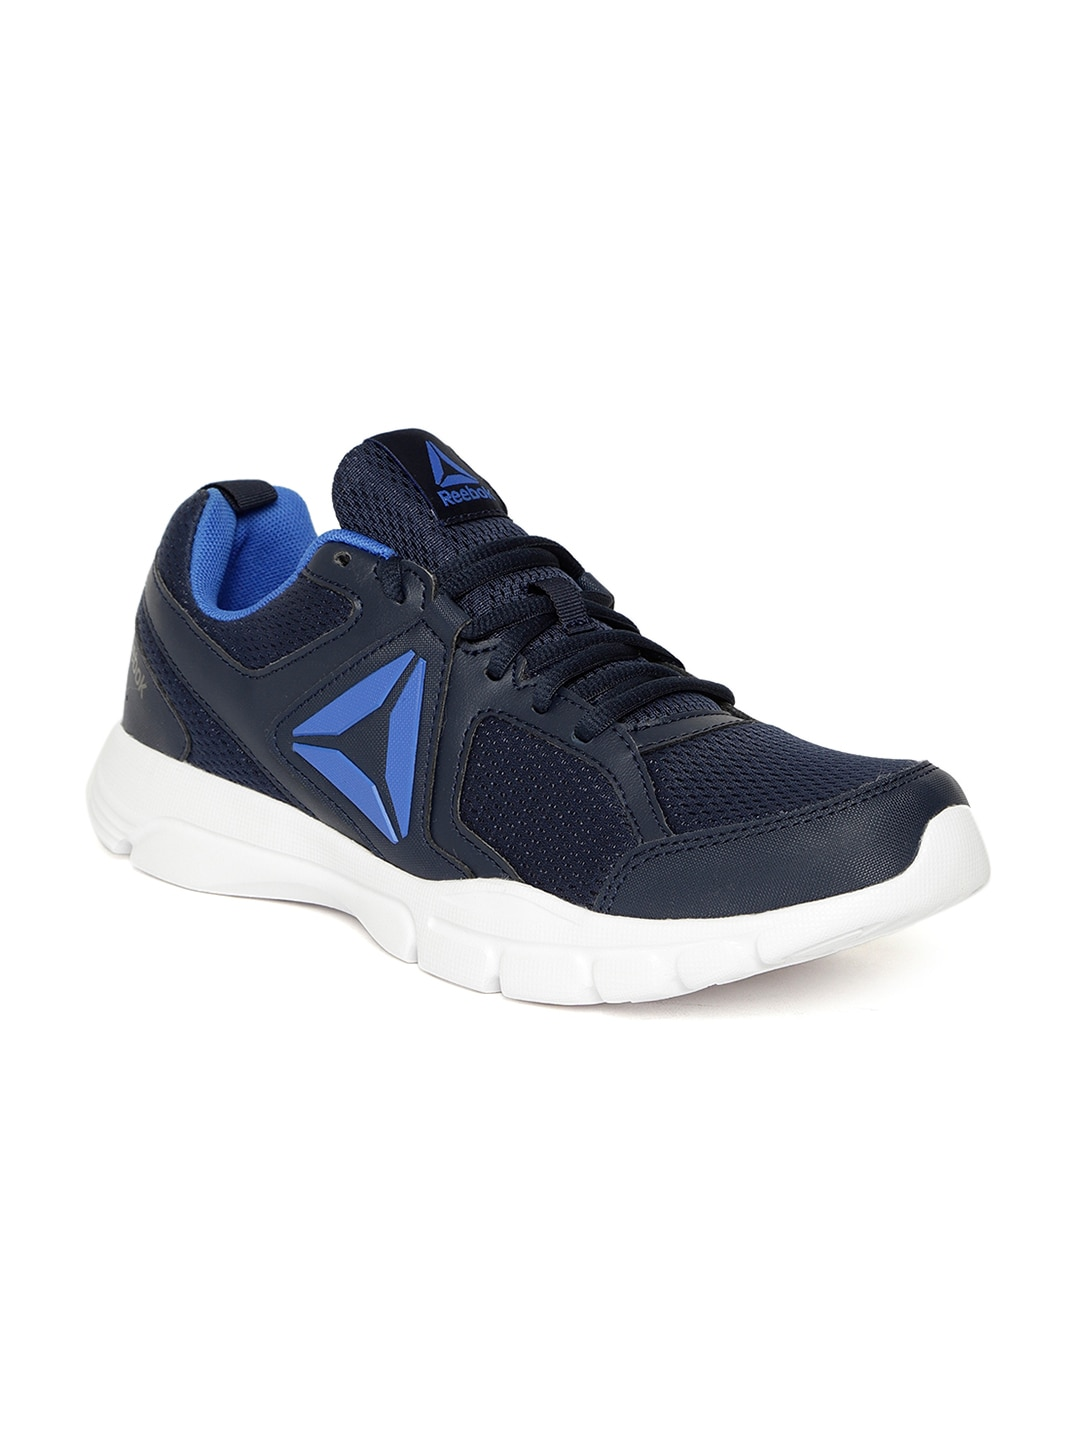 1707c04ee58 Reebok Training Shoes - Buy Reebok Training Shoes online in India